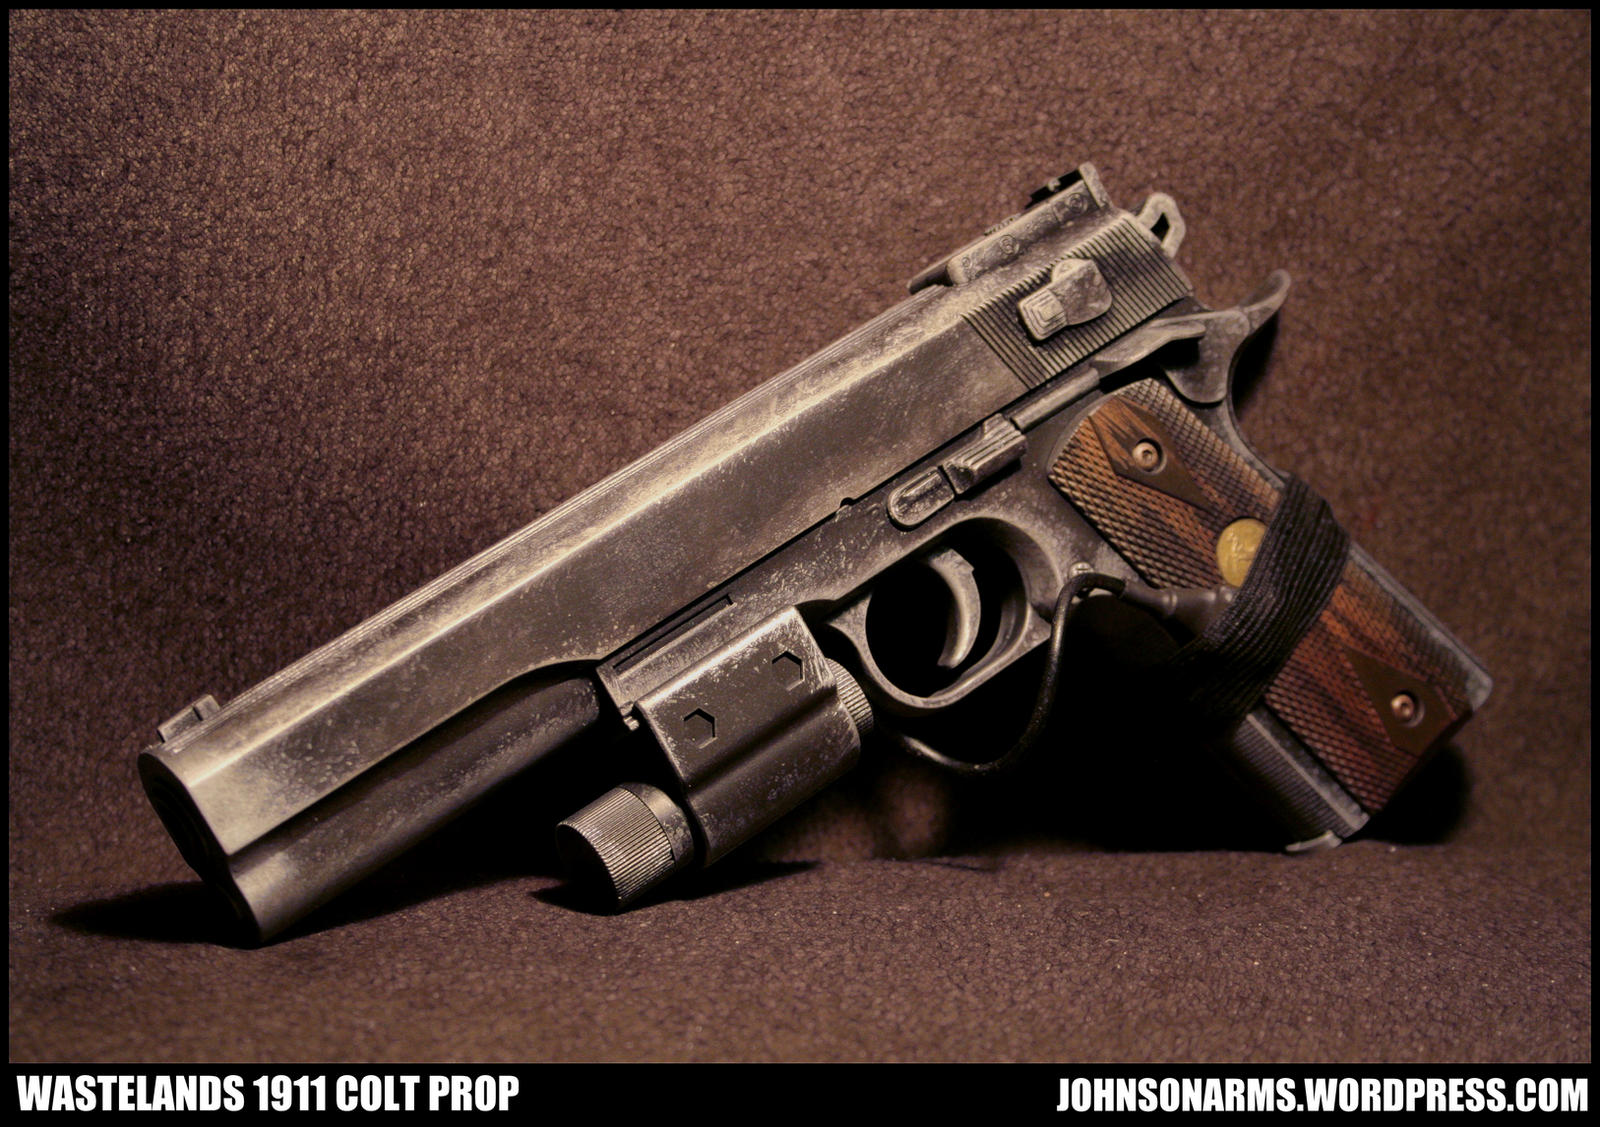 Wastlands 1911 Colt Prop by JohnsonArms